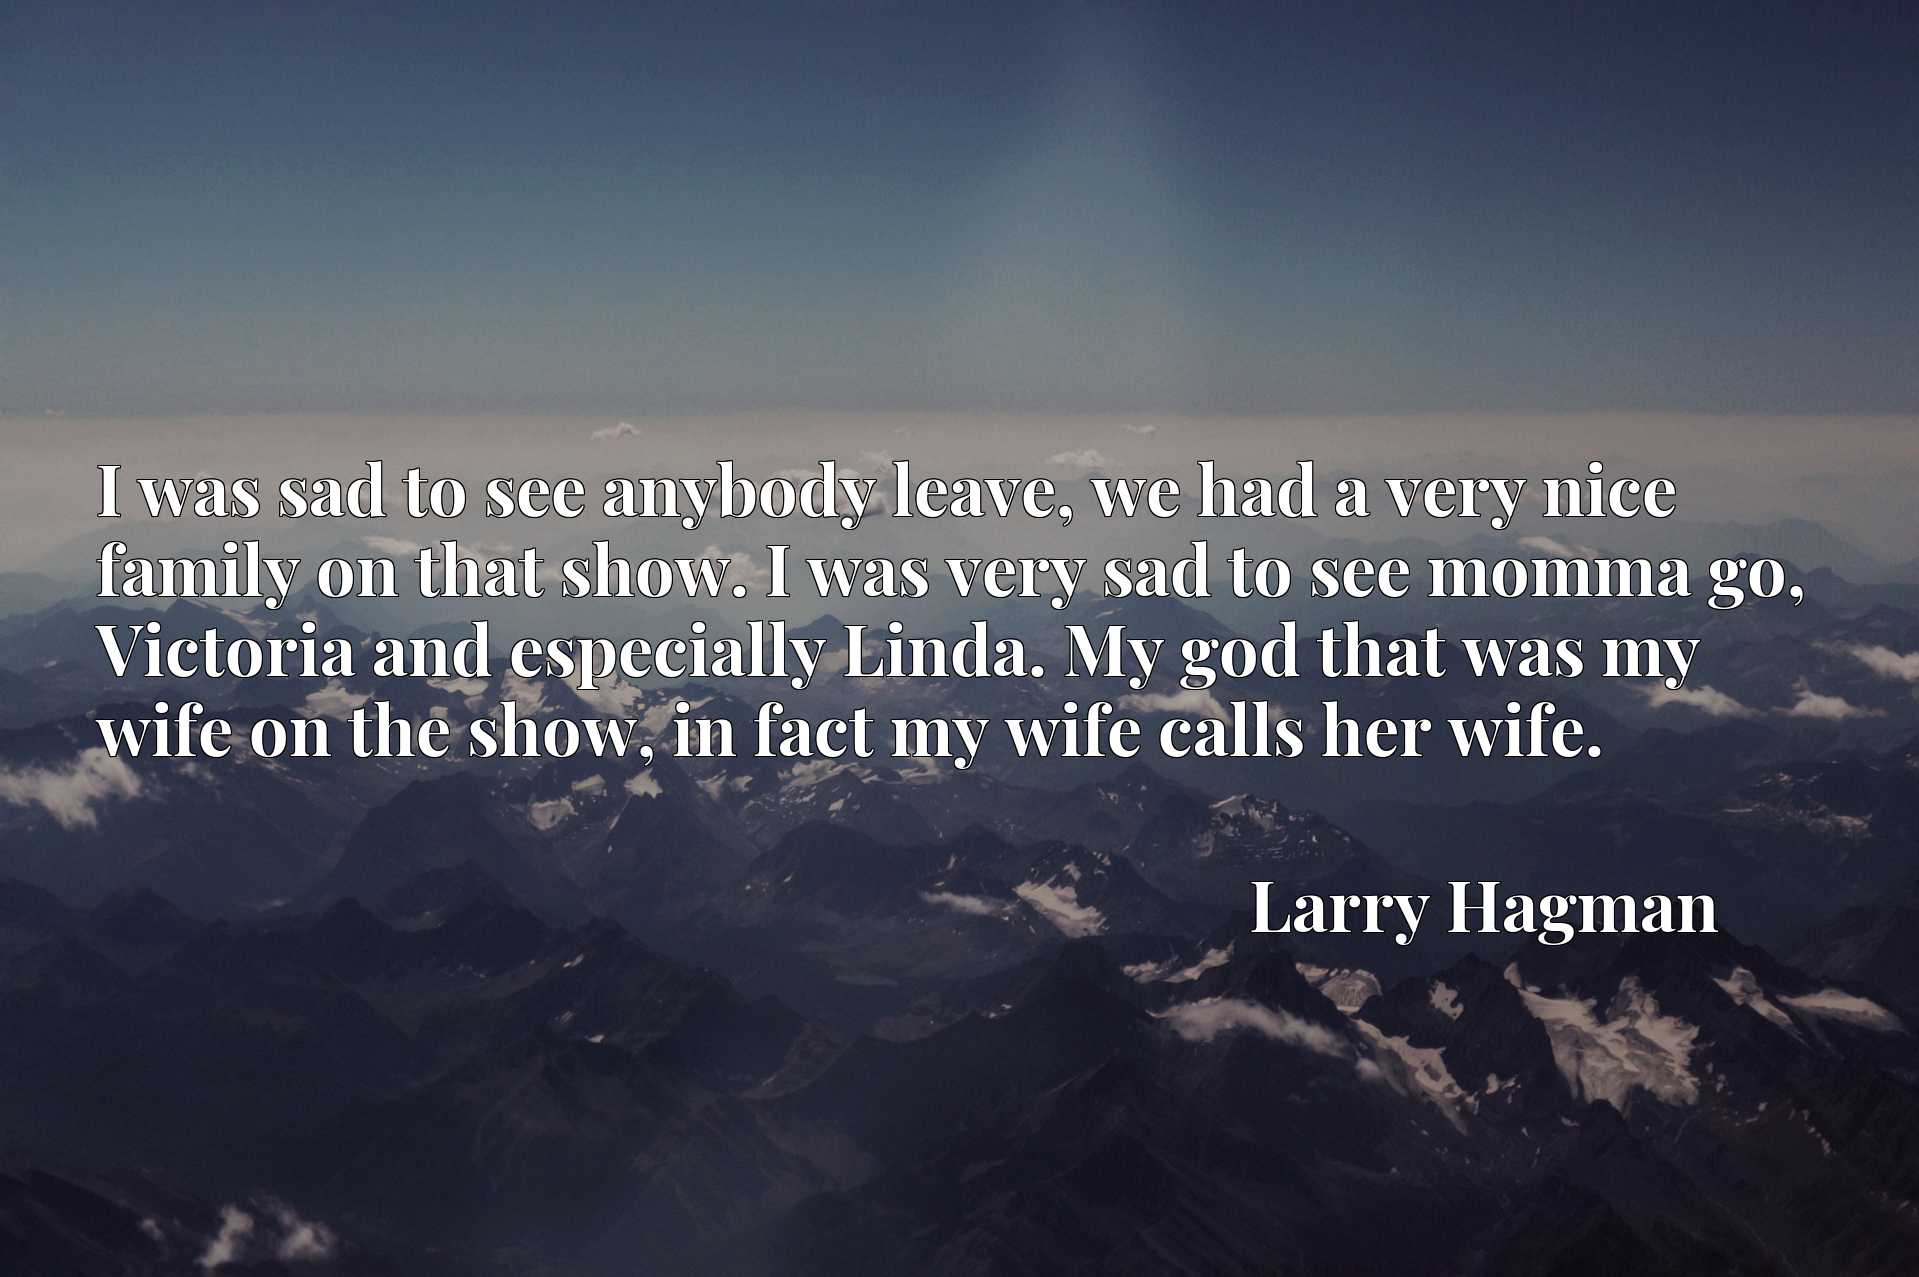 I was sad to see anybody leave, we had a very nice family on that show. I was very sad to see momma go, Victoria and especially Linda. My god that was my wife on the show, in fact my wife calls her wife.